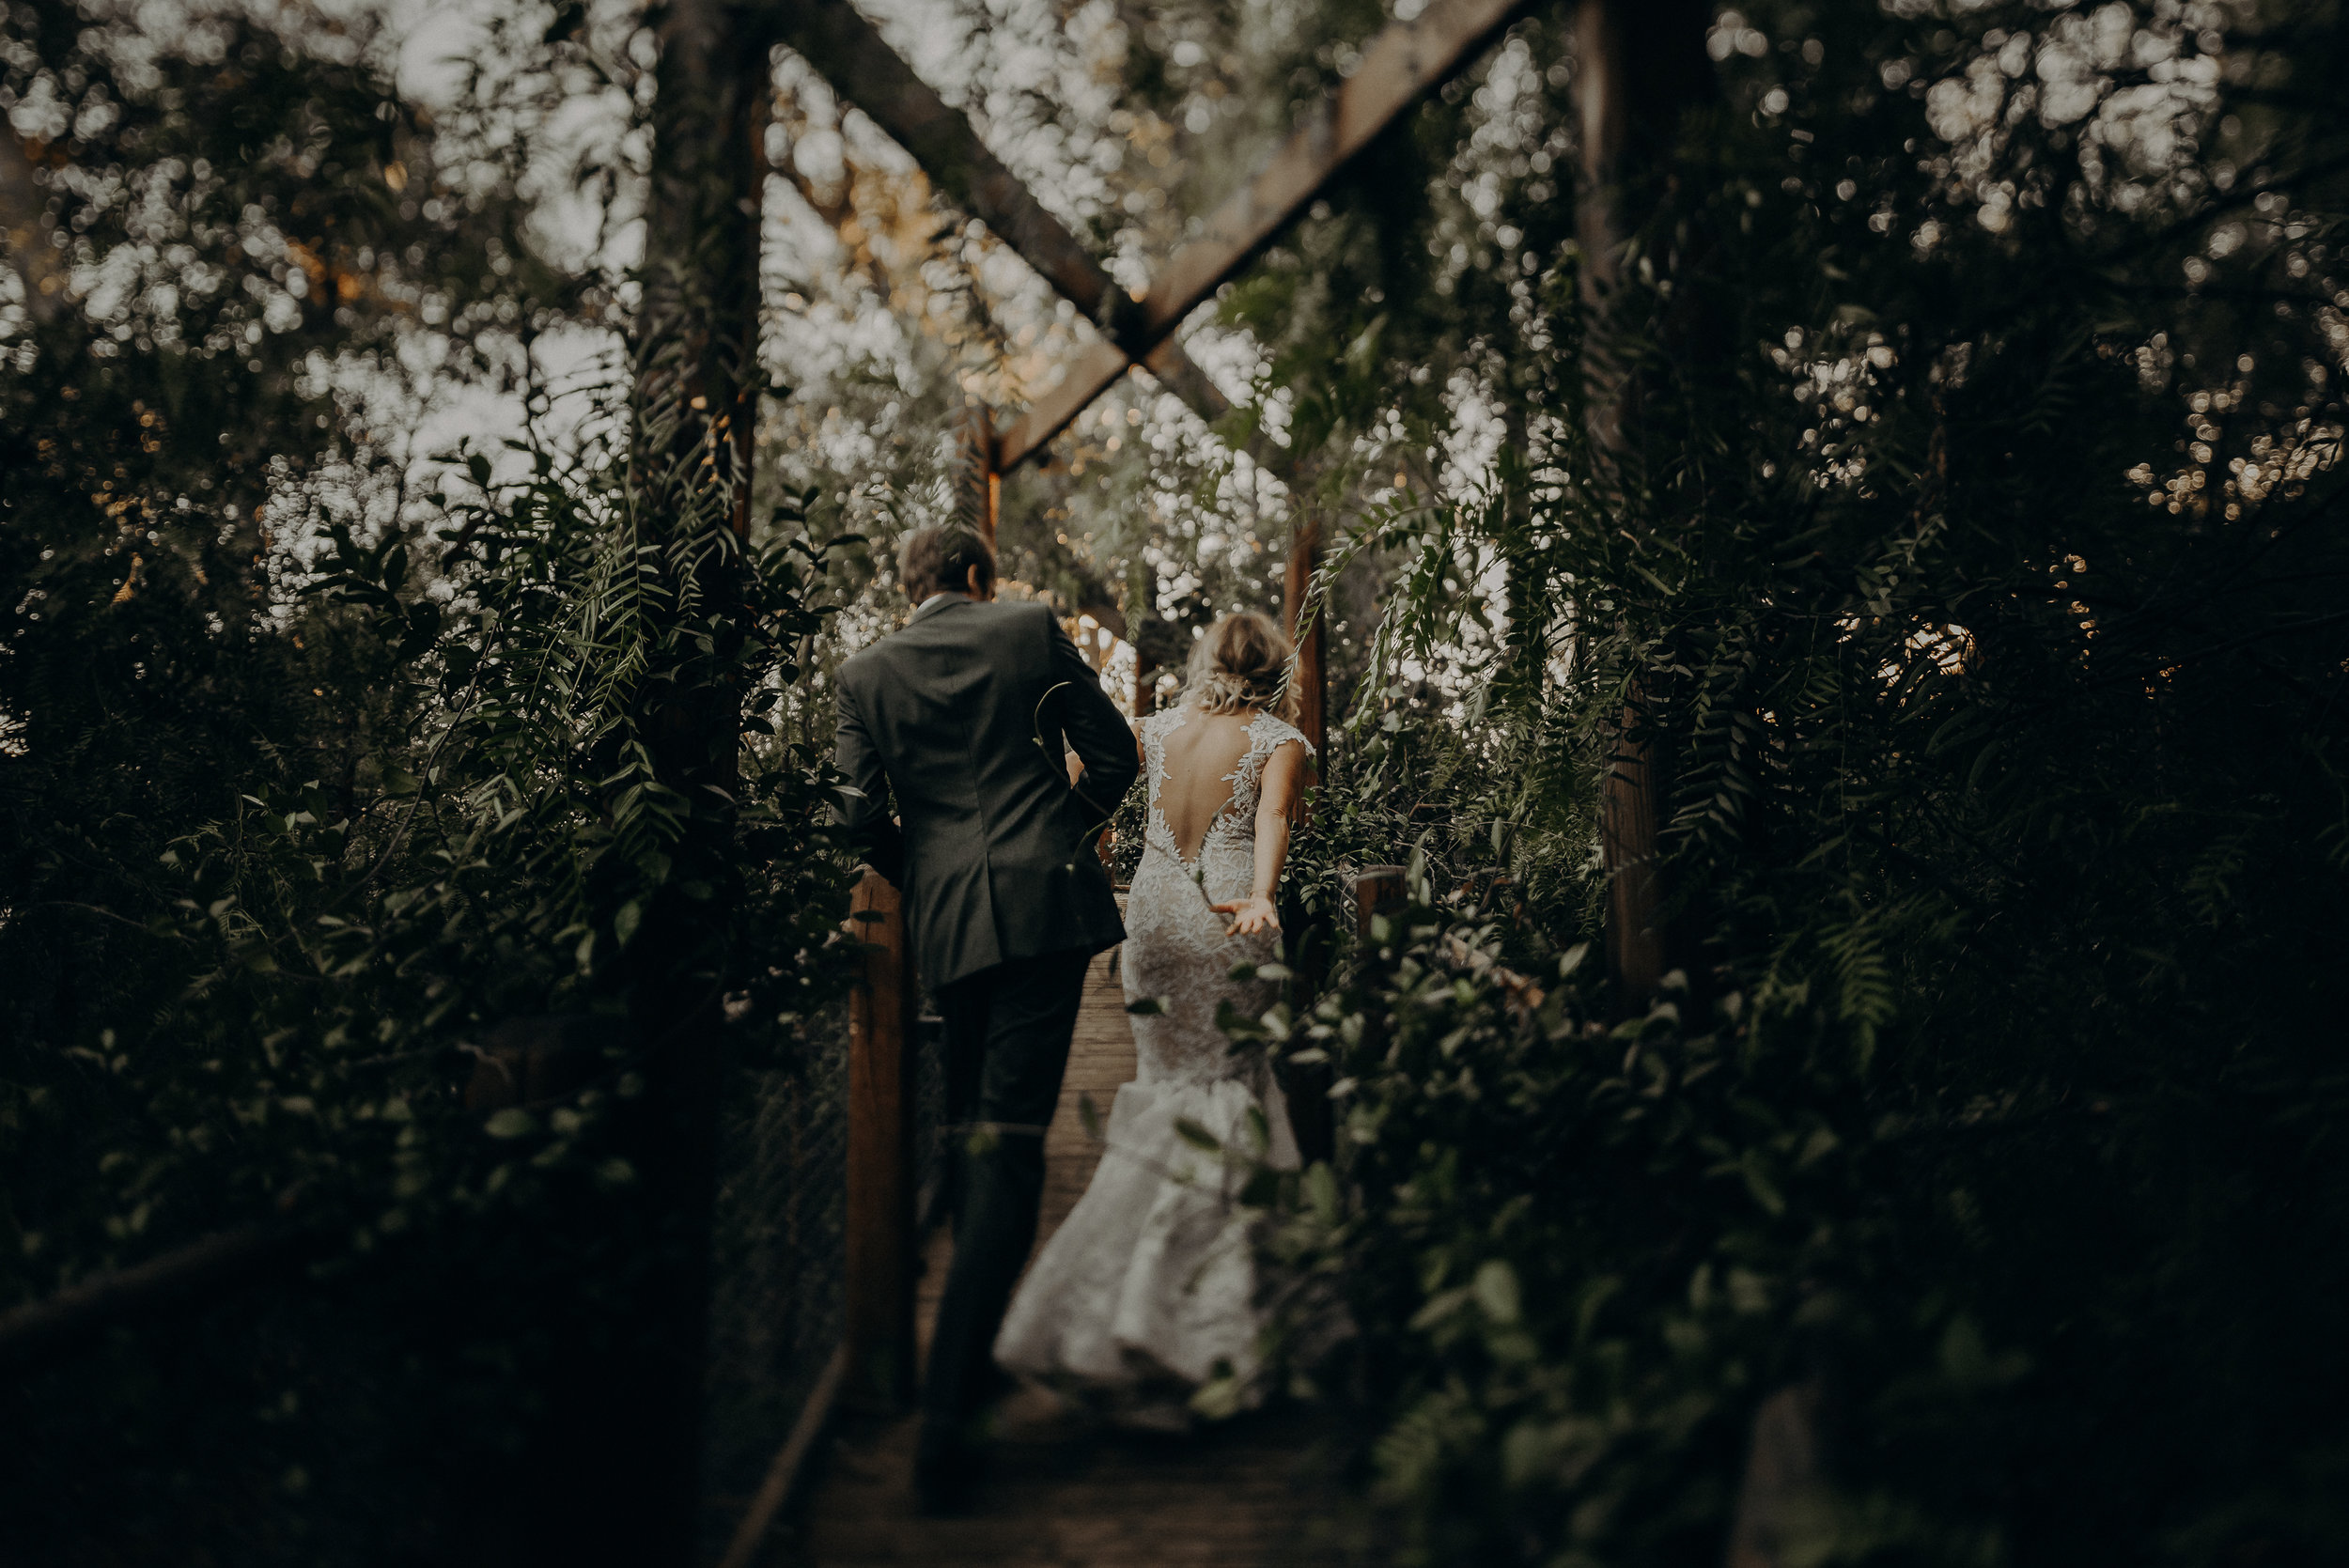 Isaiah + Taylor Photography - Los Angeles Wedding Photographer - Open Air Resort Wedding-108.jpg